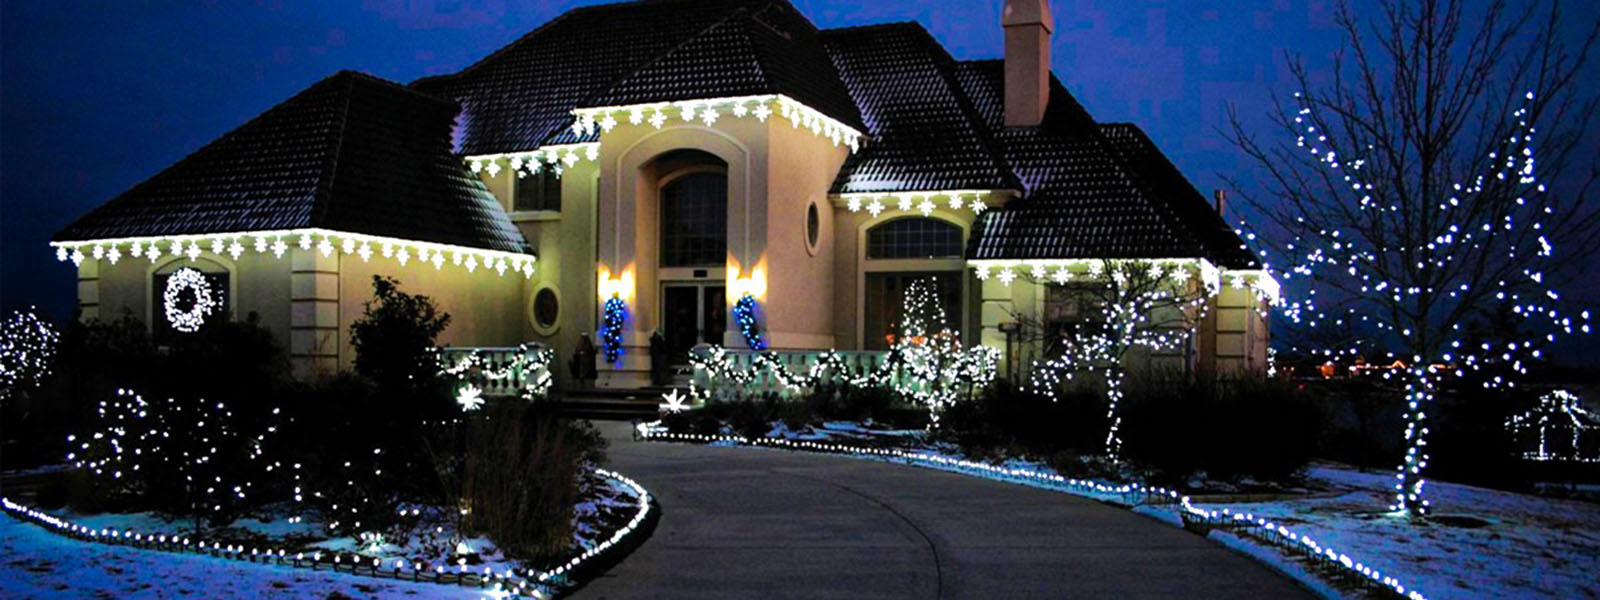 The Lawn Barber Holiday Lighting Installed Long Island